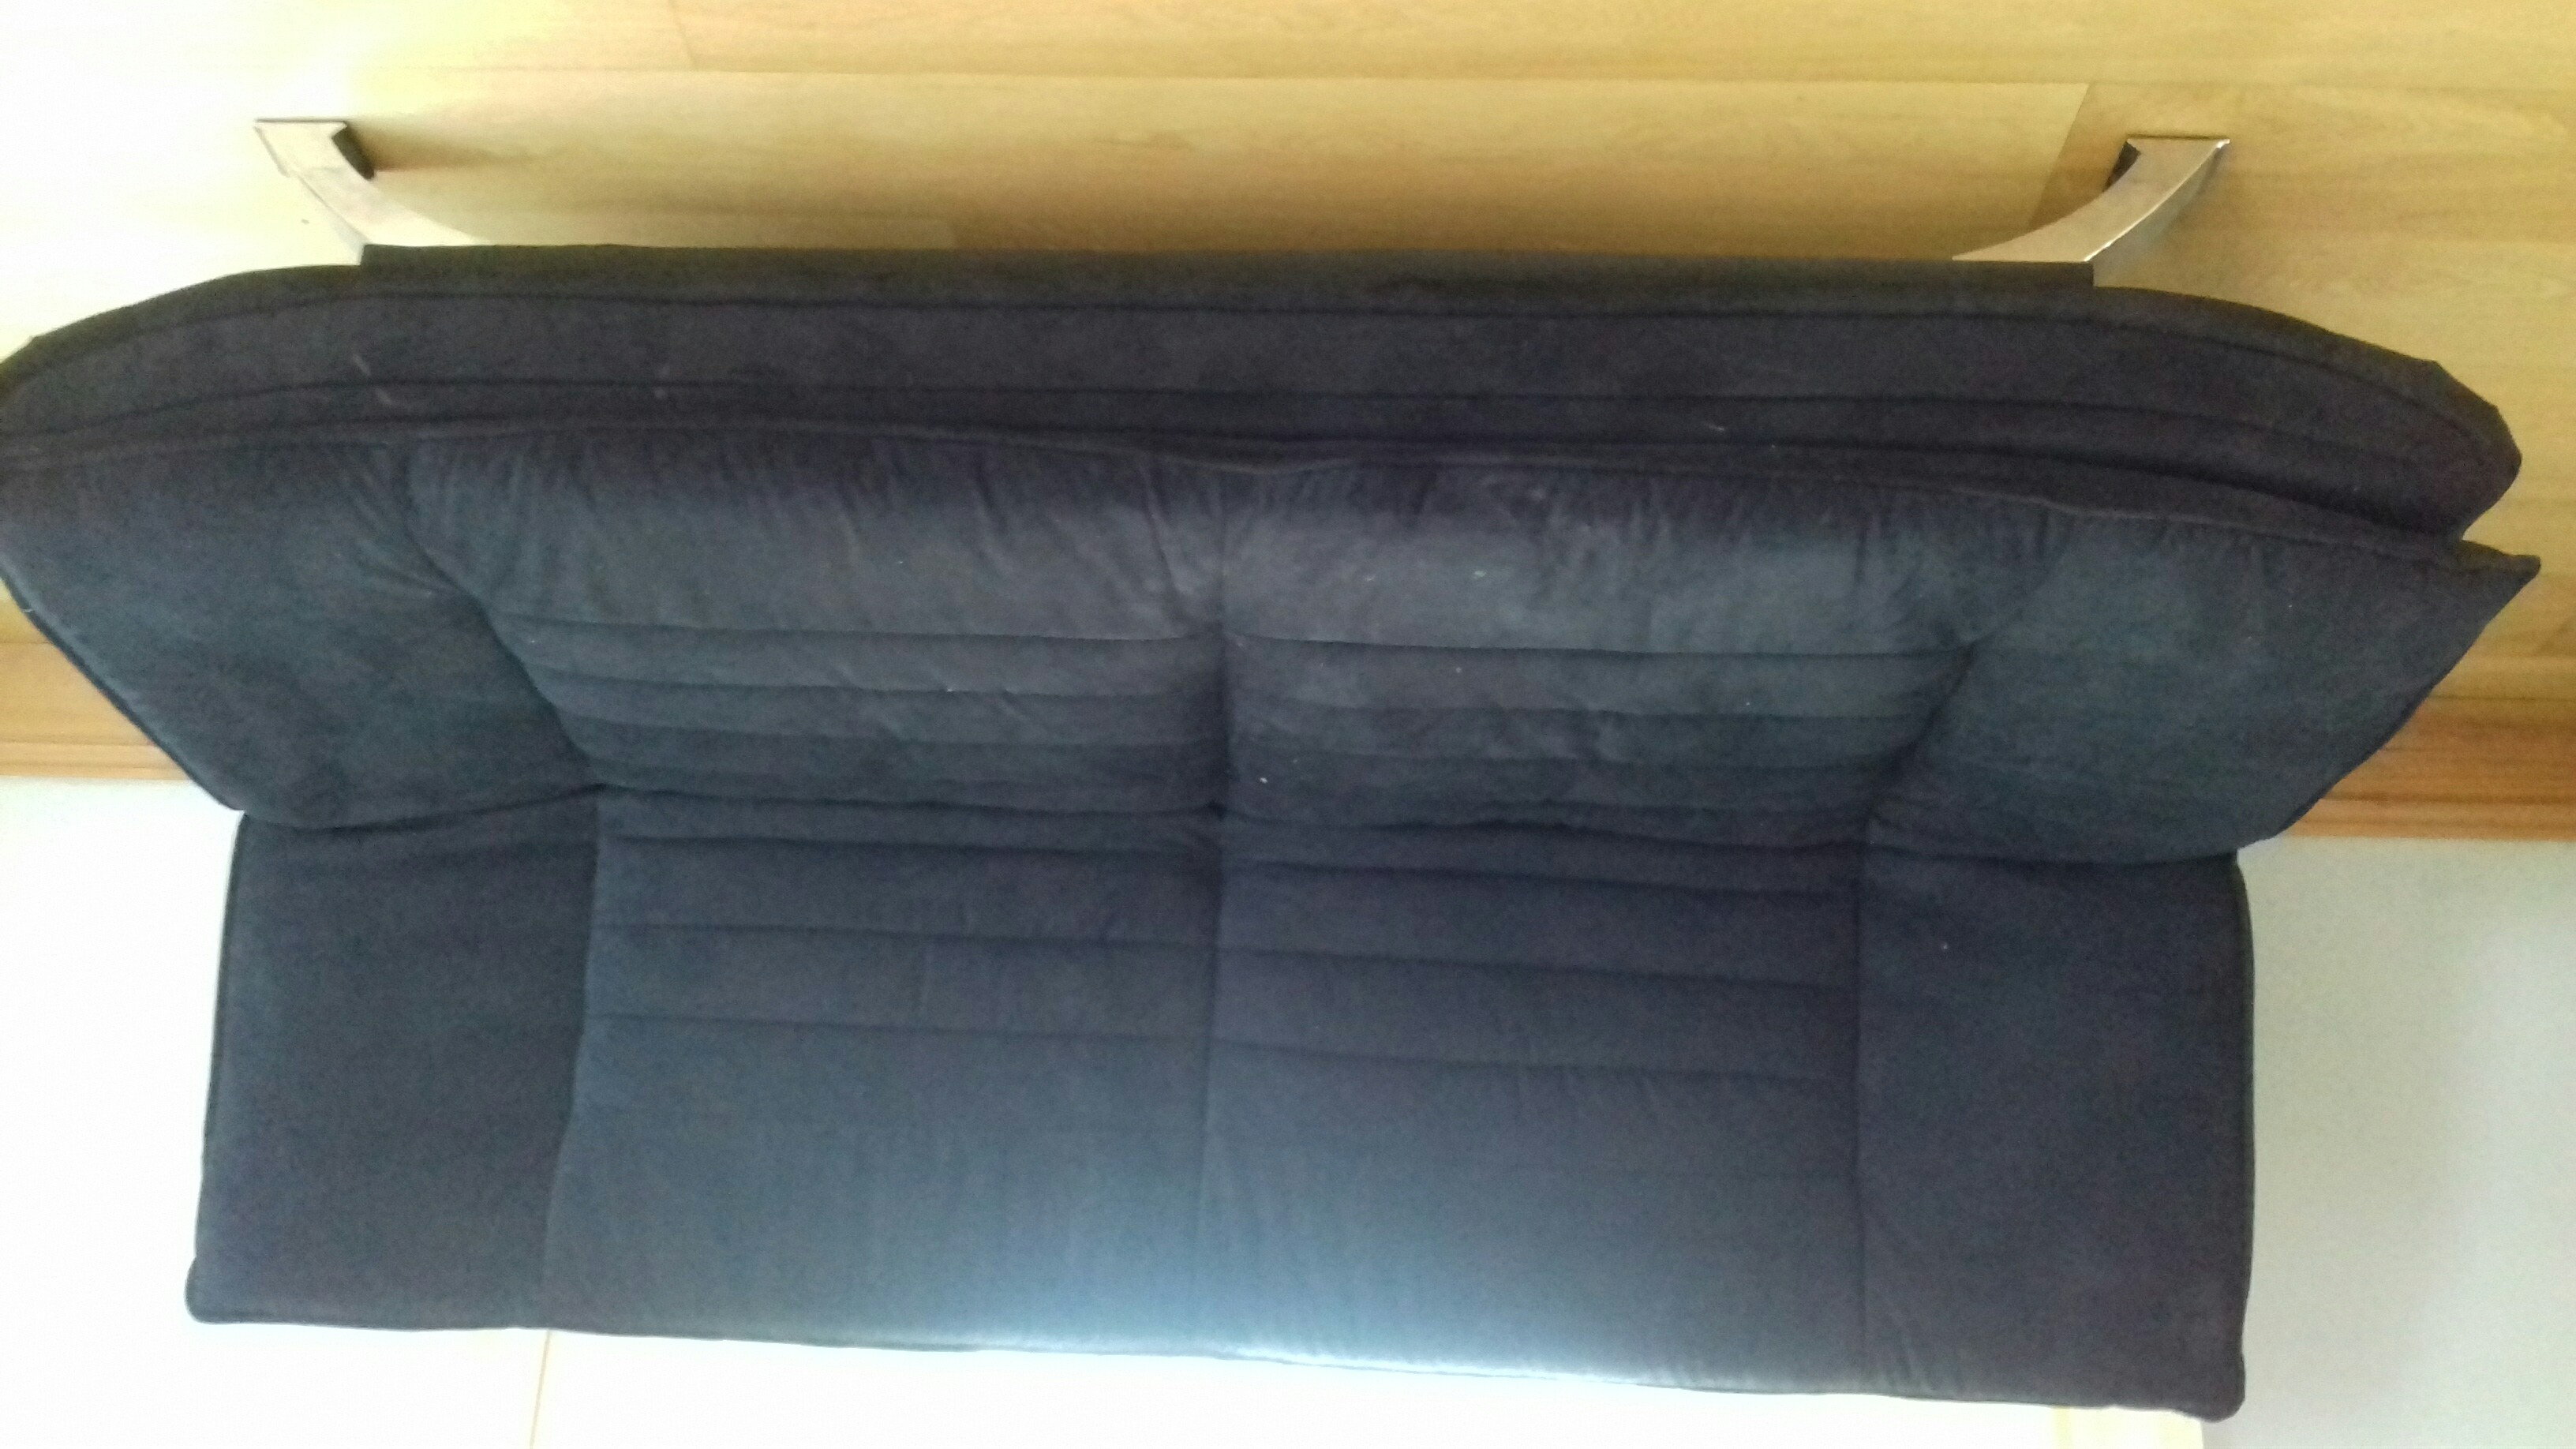 3 Seater Futon Sofa Bed In Black Great Condition.